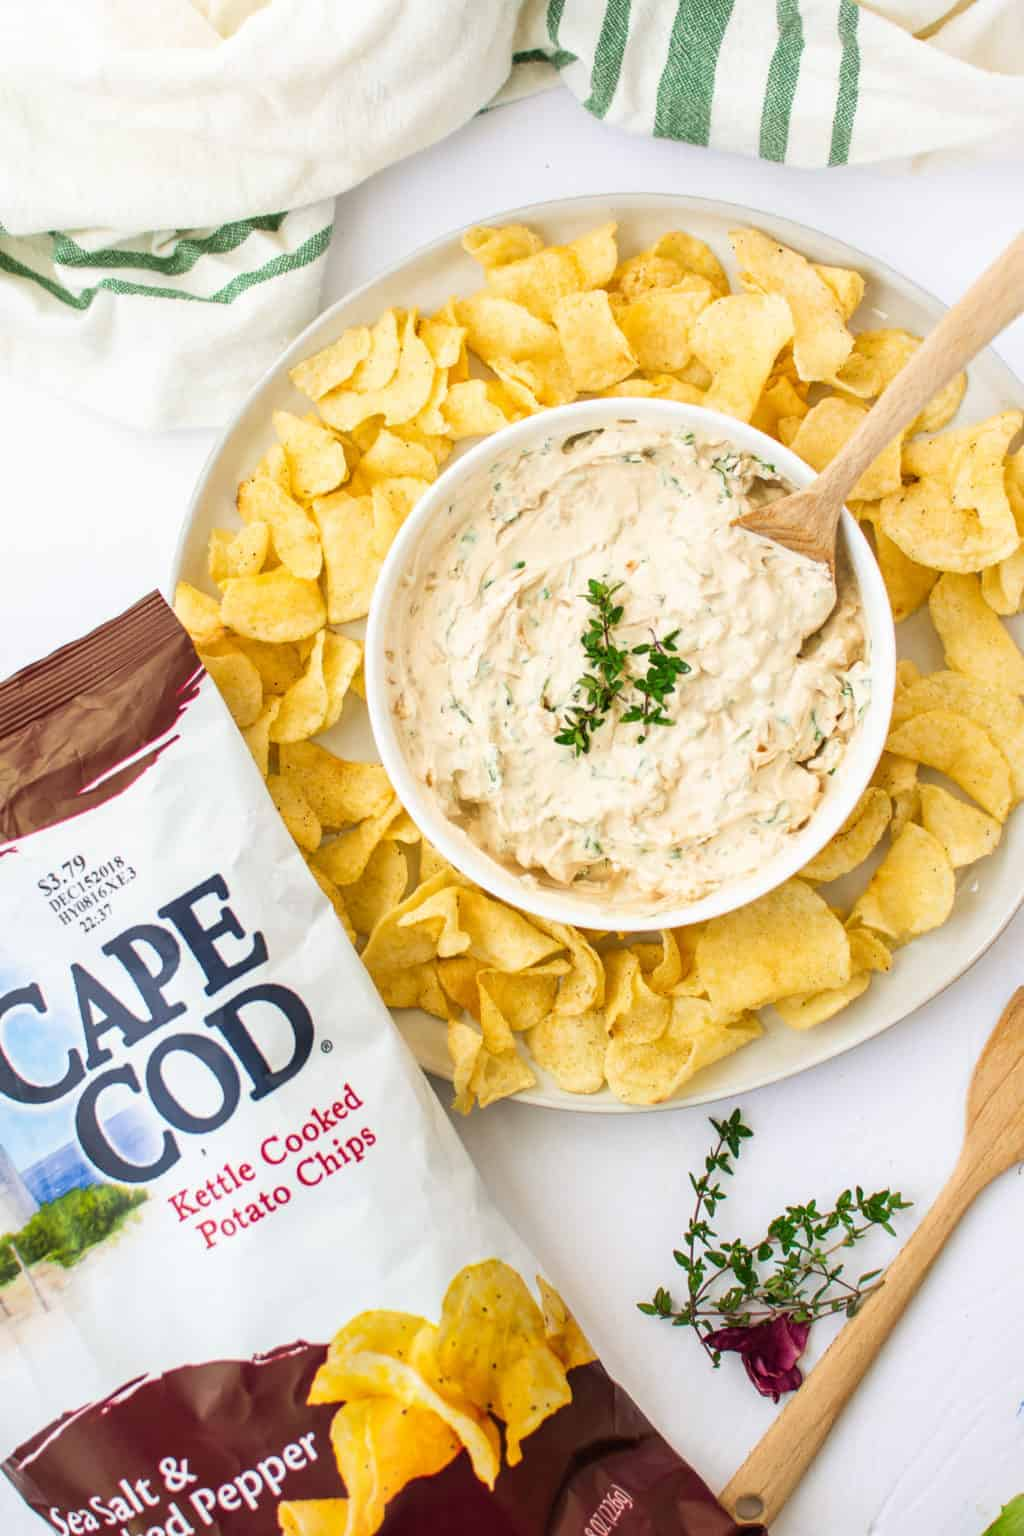 High in protein, gluten free, and only 2 ingredients, this Easy + Healthy French Onion Dip is the perfect appetizer.    The Butter Half #appetizerrecipes #easyappetizer #frenchoniondip